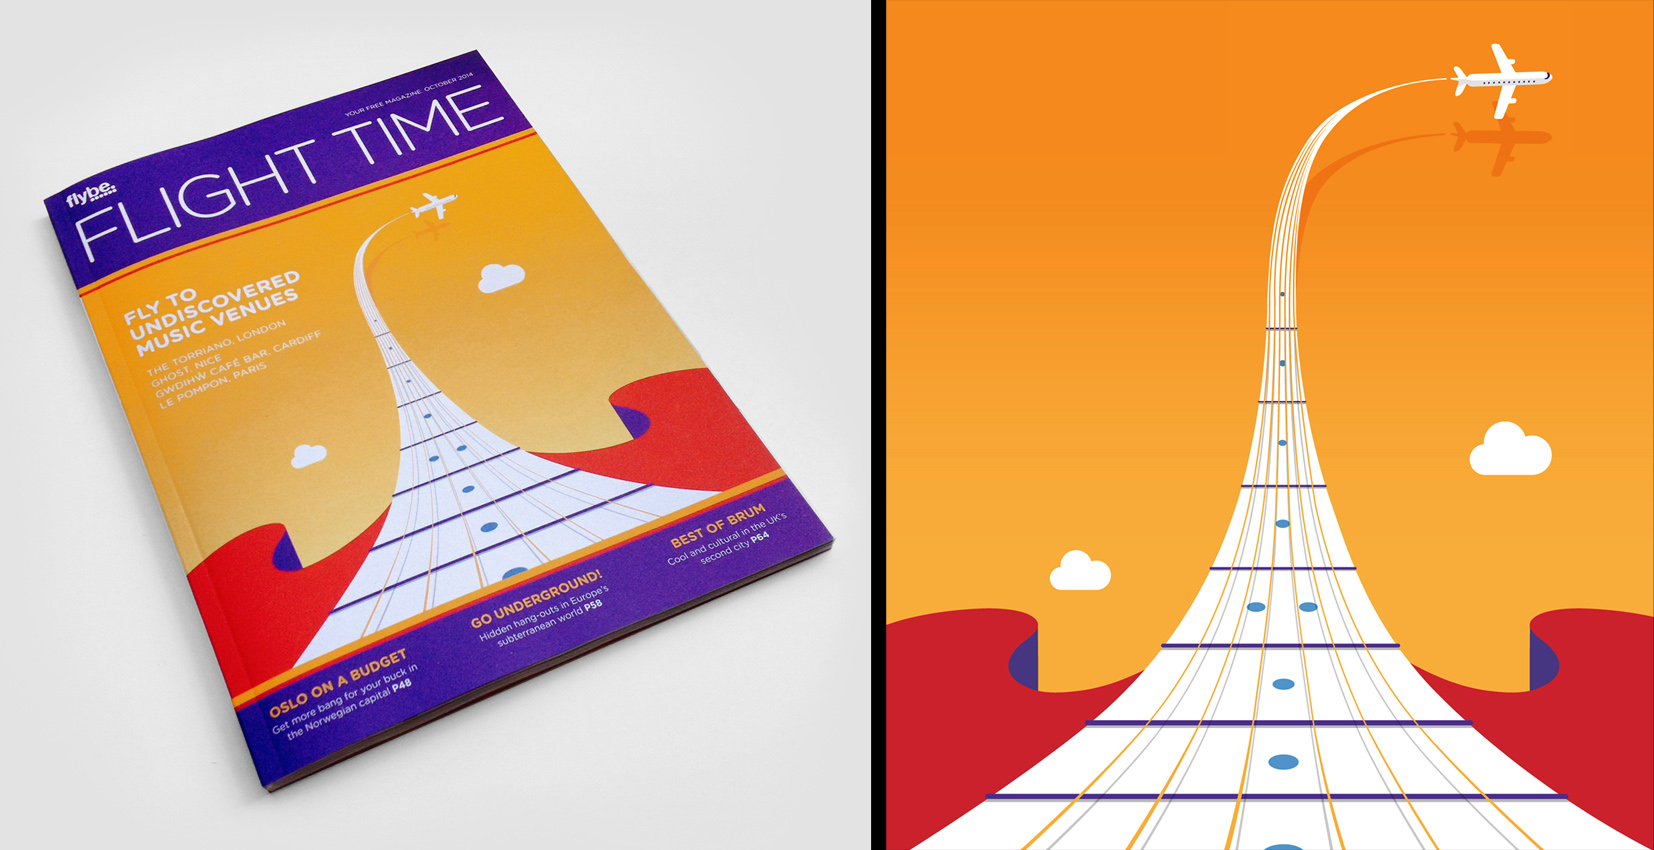 Flybe Cover